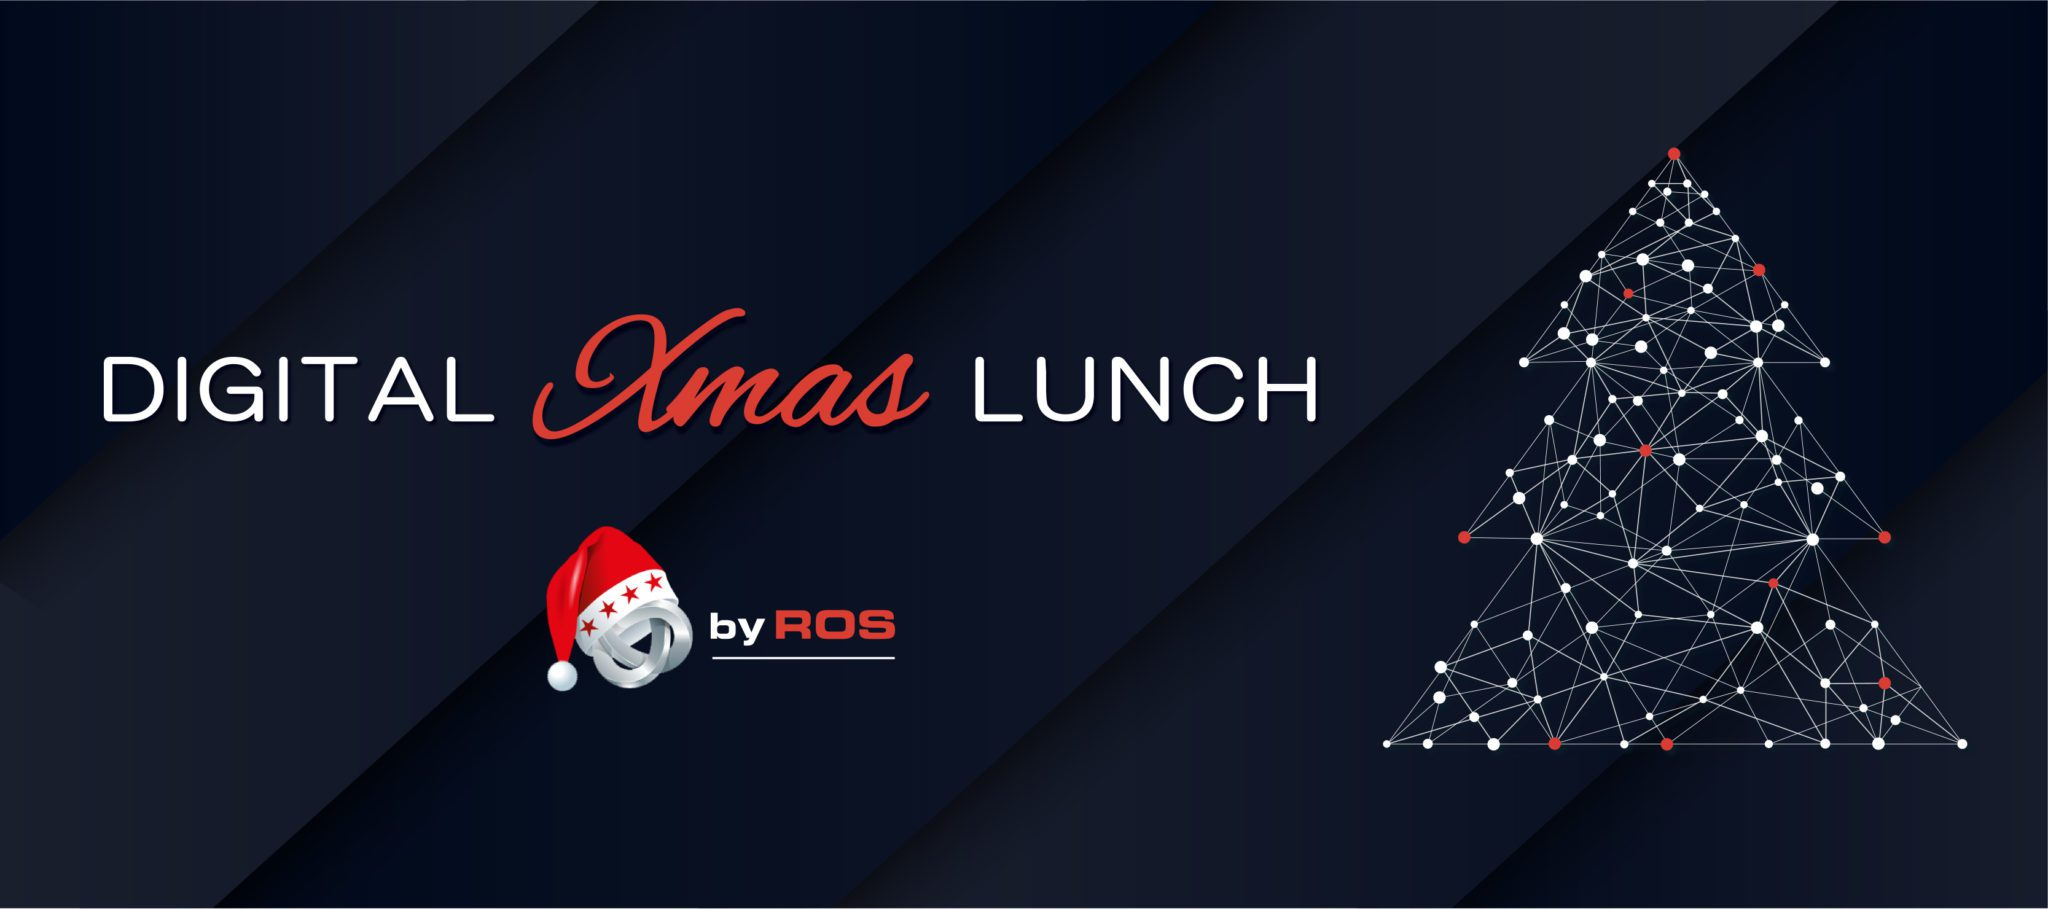 Digital Xmas Lunch